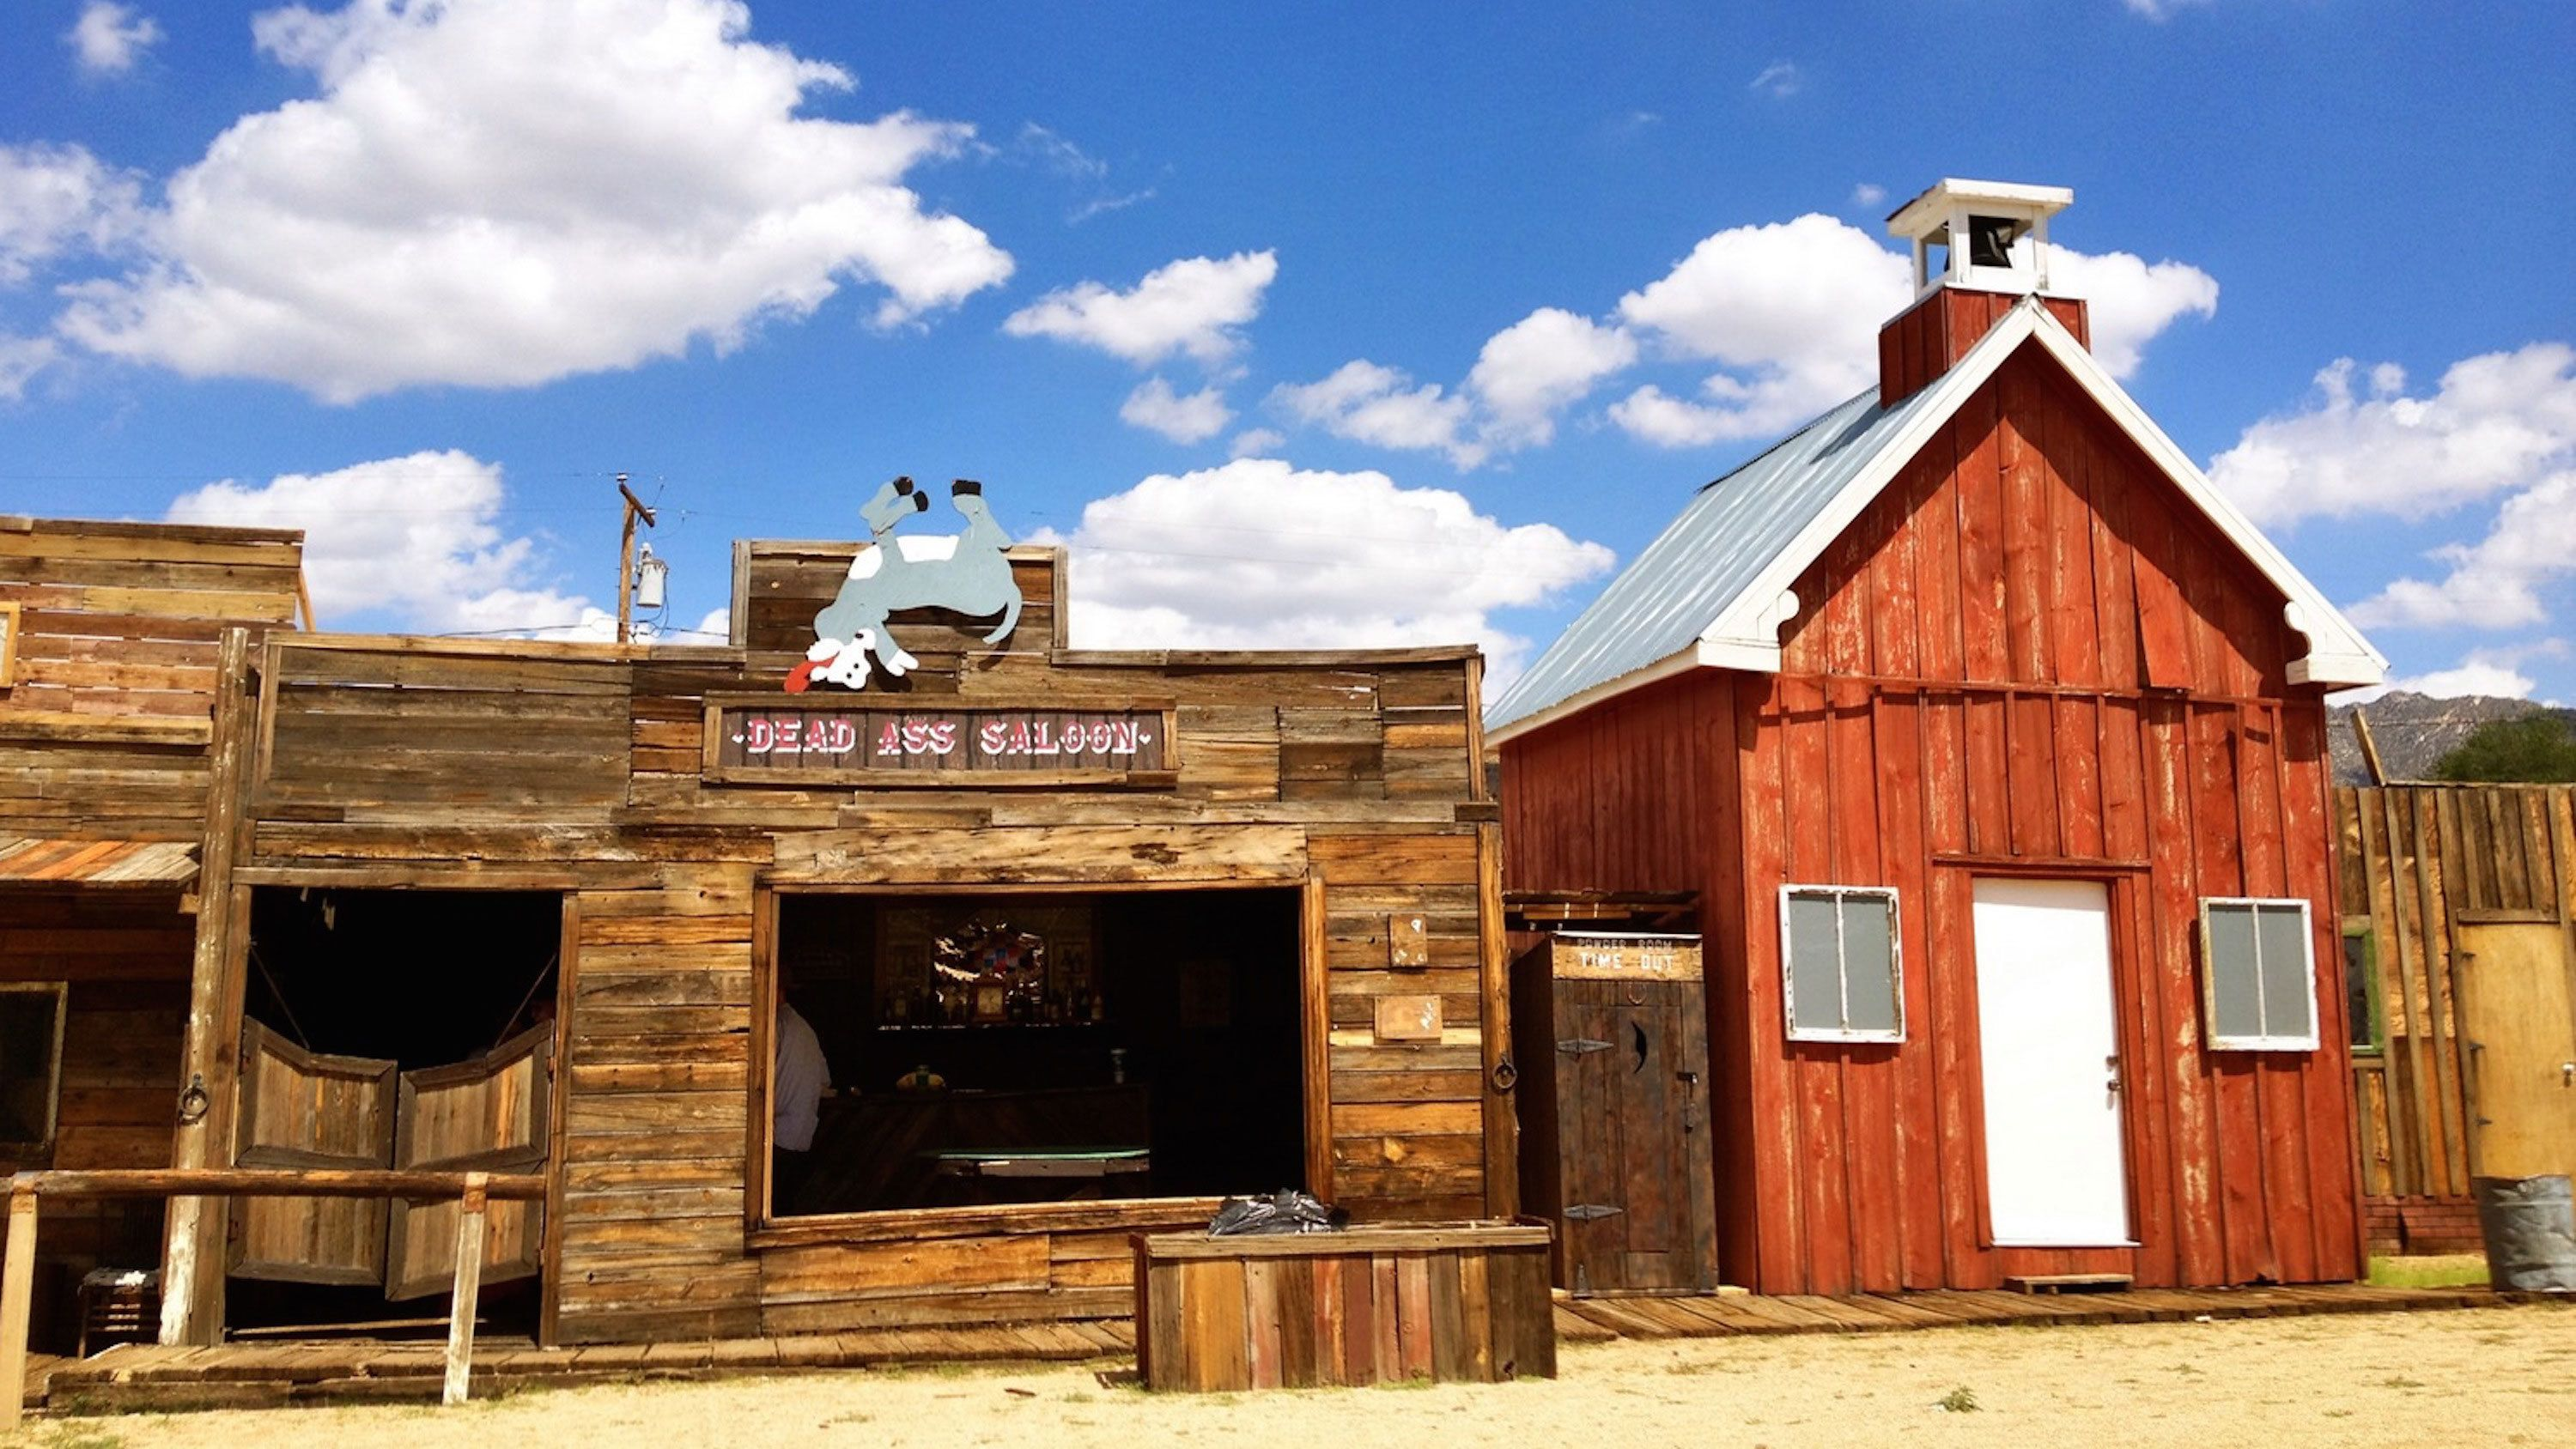 Saloon and other buildings in a ghost town